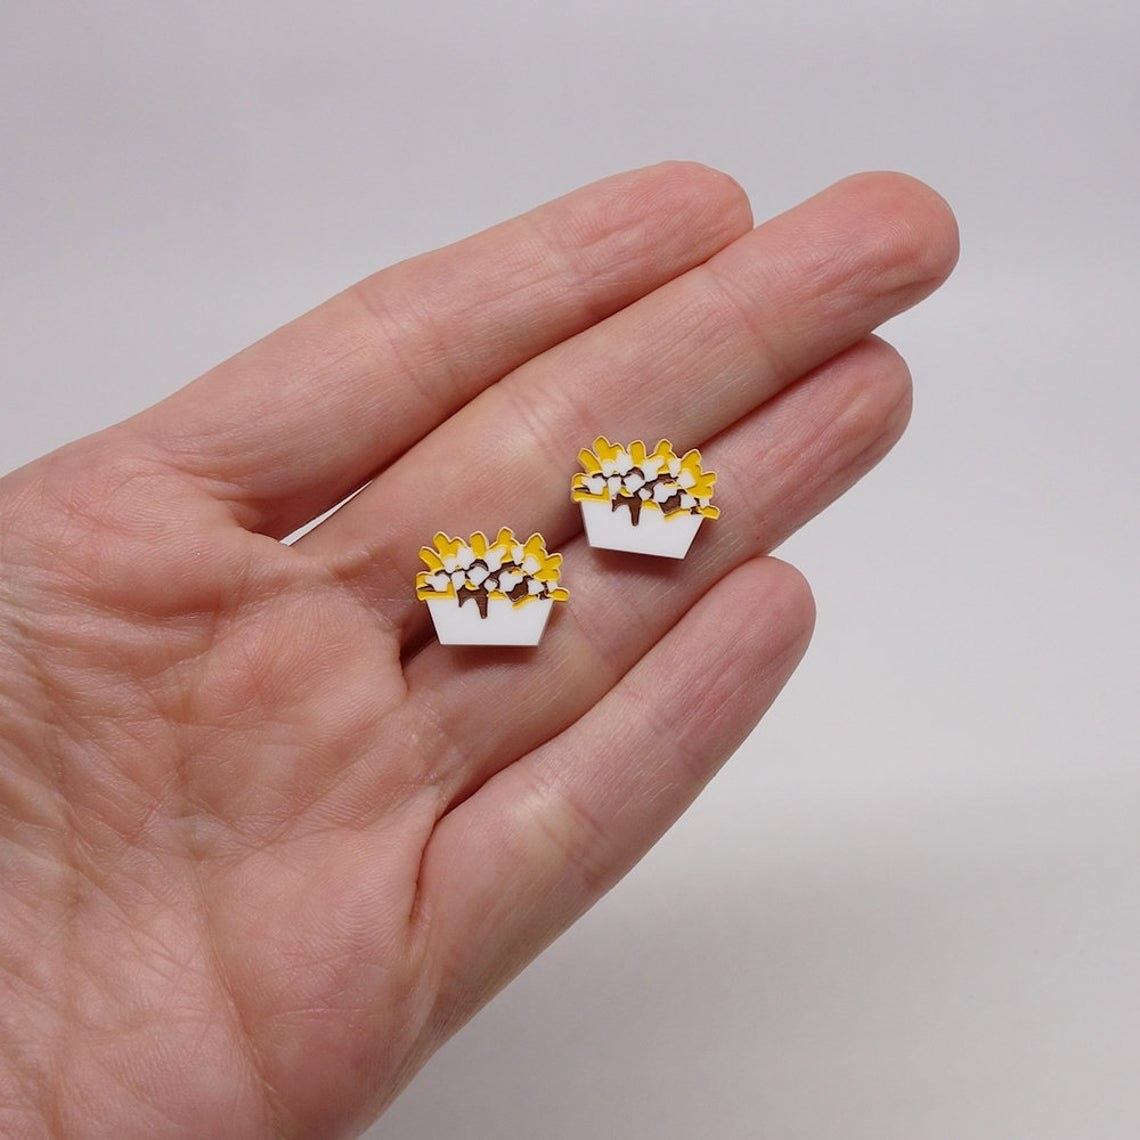 A person holding the poutine studs